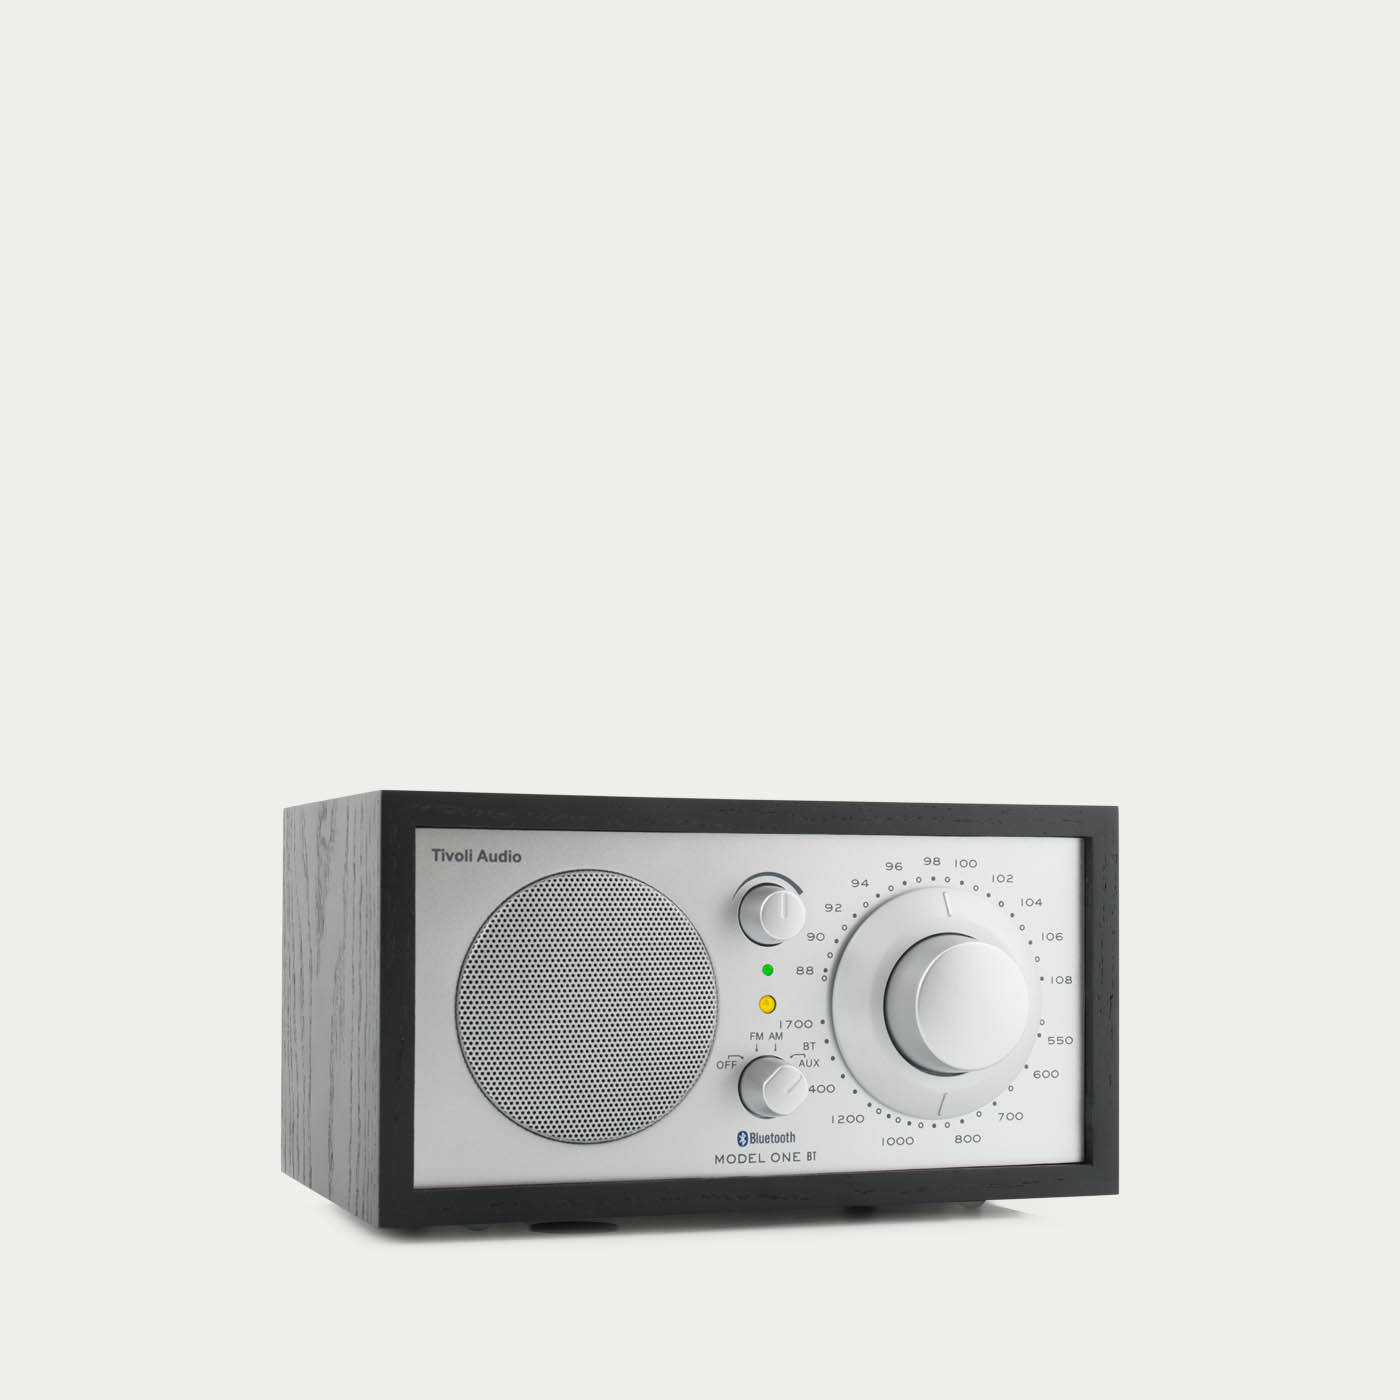 Black Ash / Silver Model One BT Tivoli Audio  | Bombinate